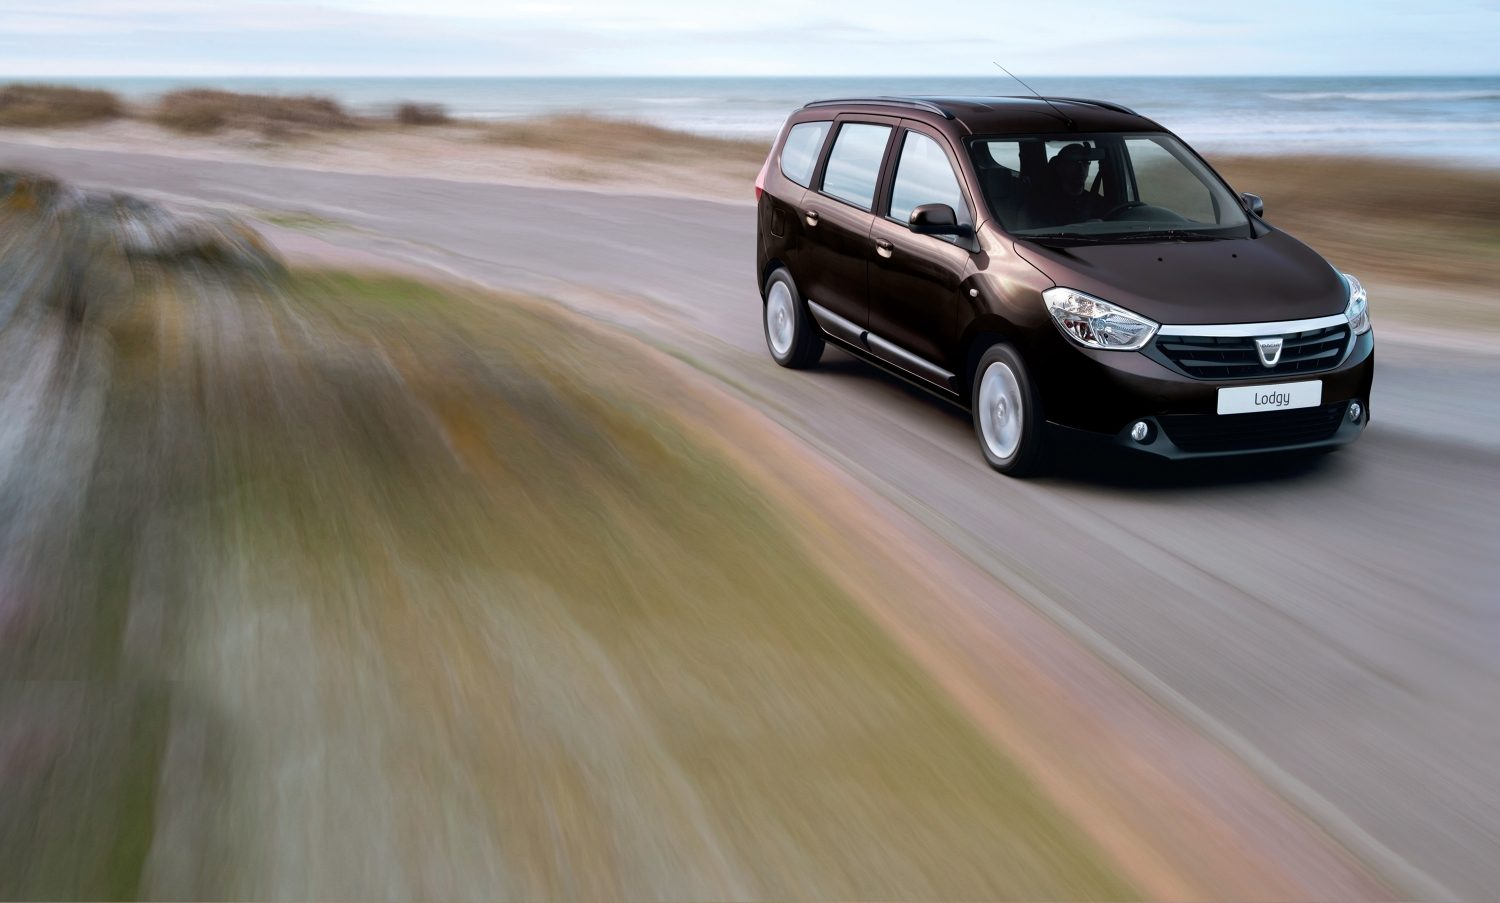 dacia-lodgy-j92-ph1-beauty-shot-desktop.jpg.ximg.l_full_m.smart.jpg